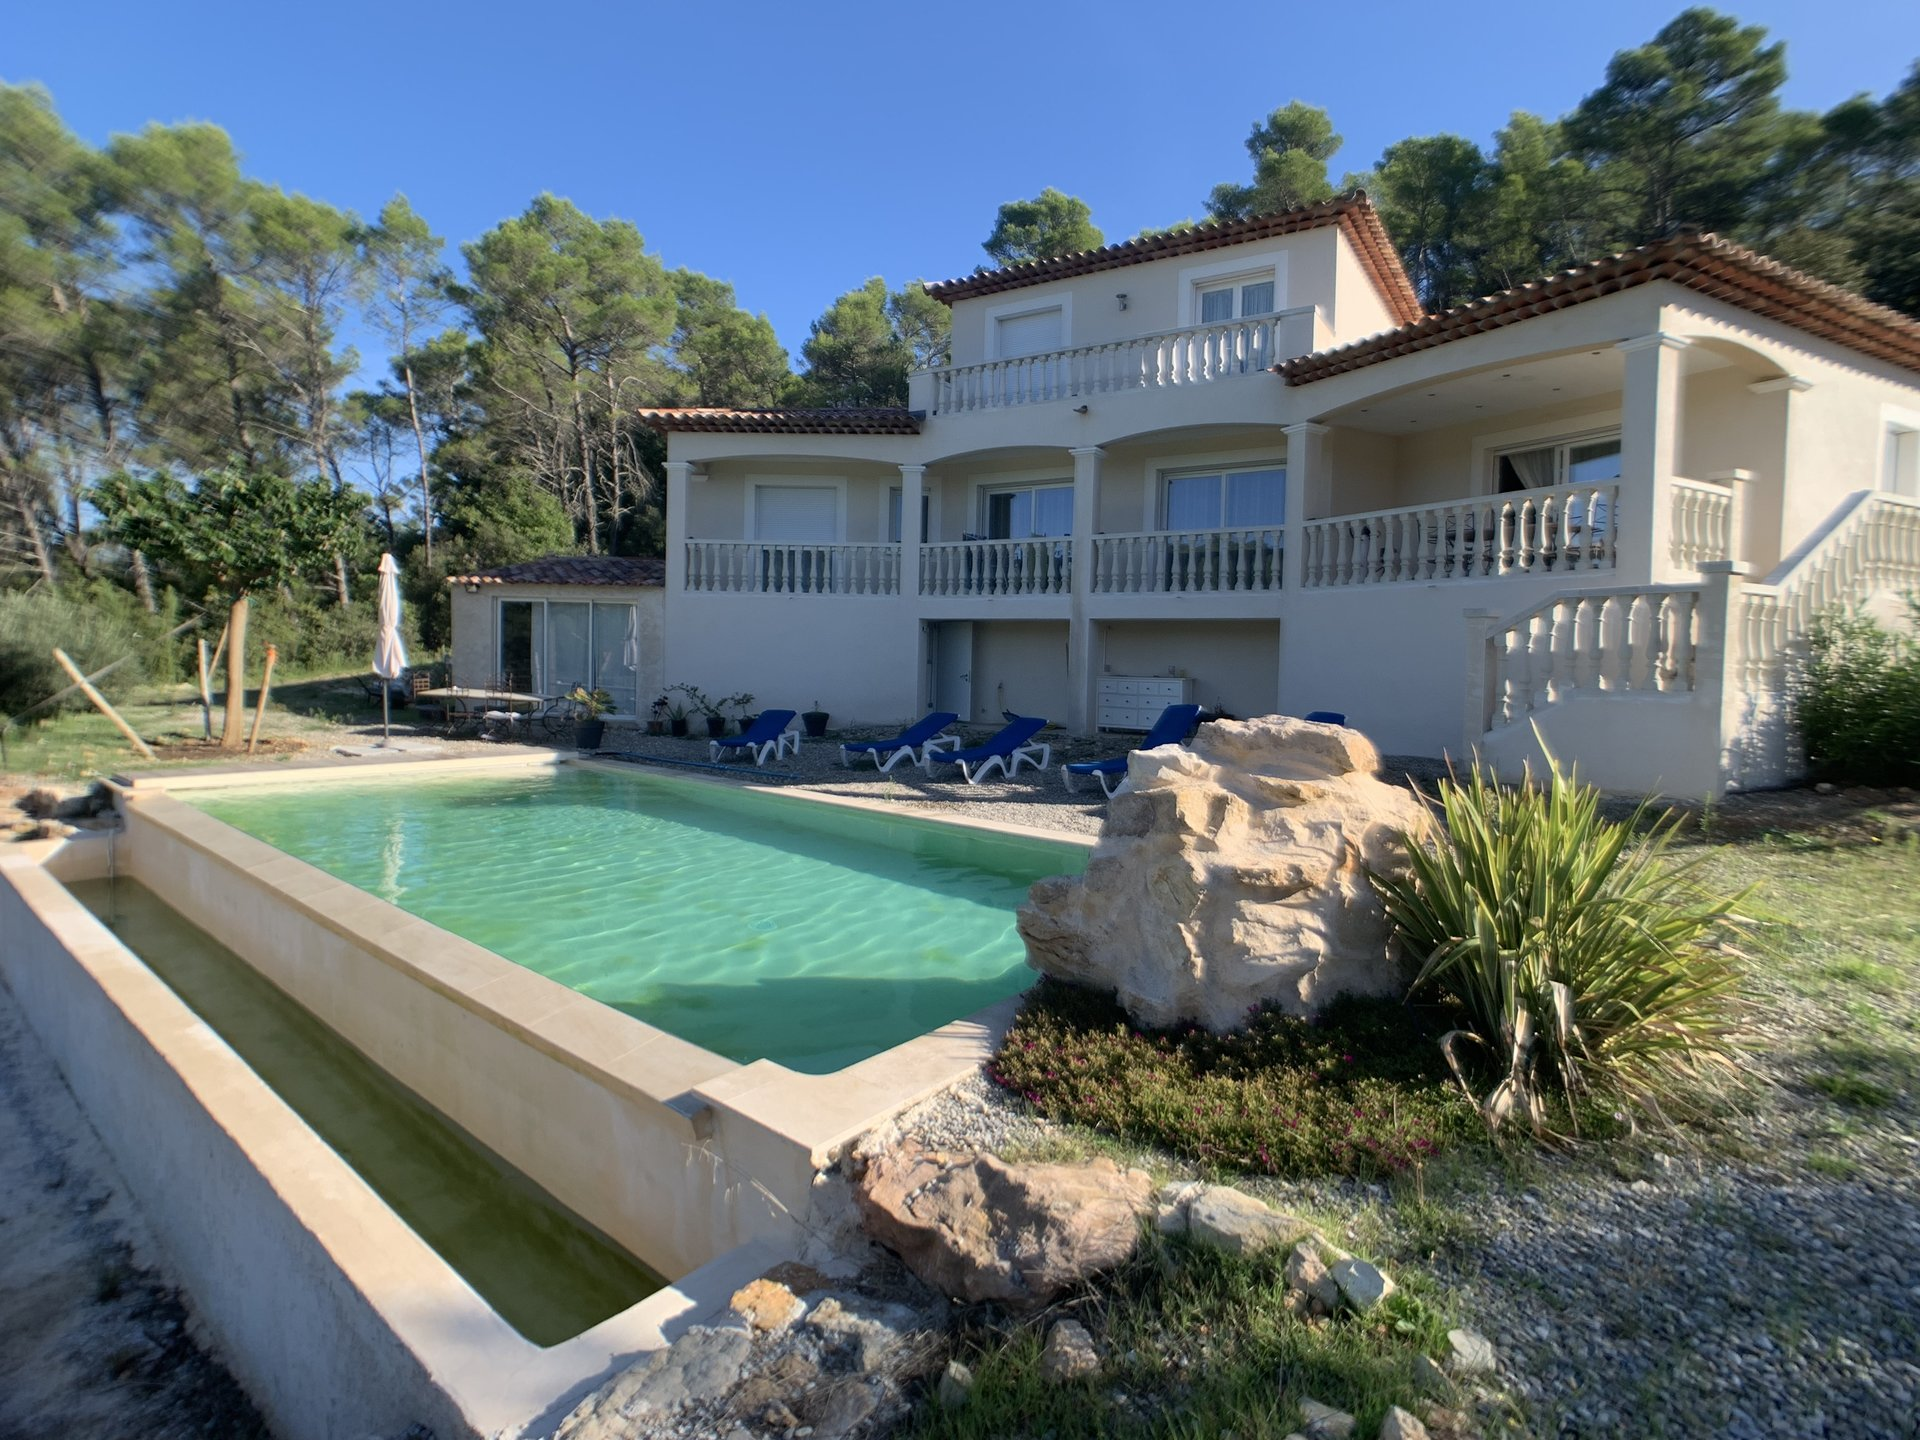 3 bedroom villa with dominant view